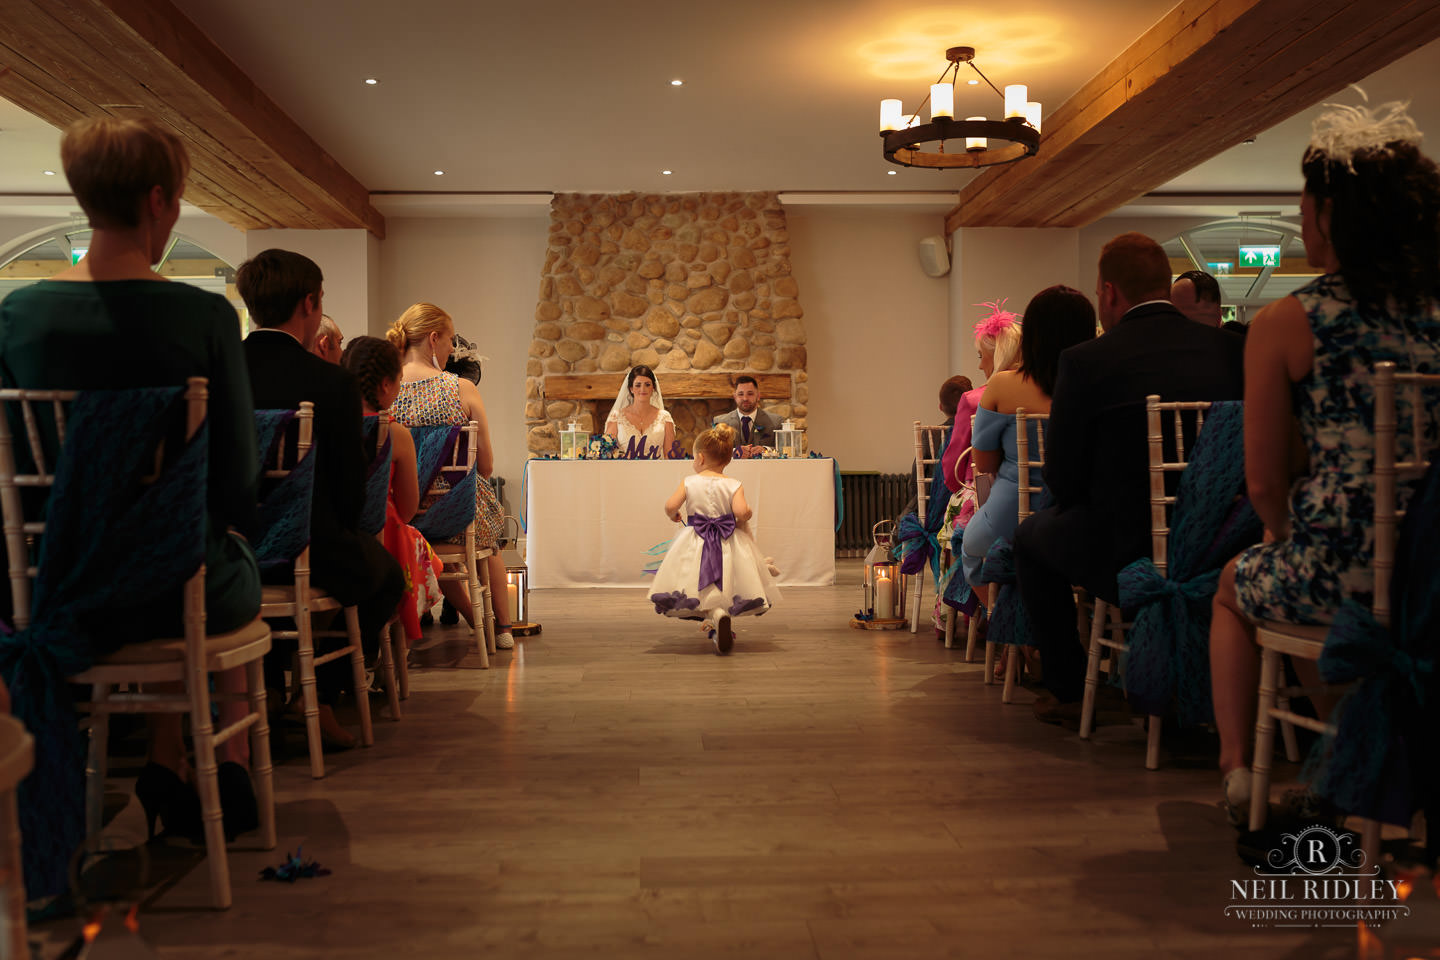 Little girl walks down the aisle during the wedding ceremony at The Mill at Conder Green